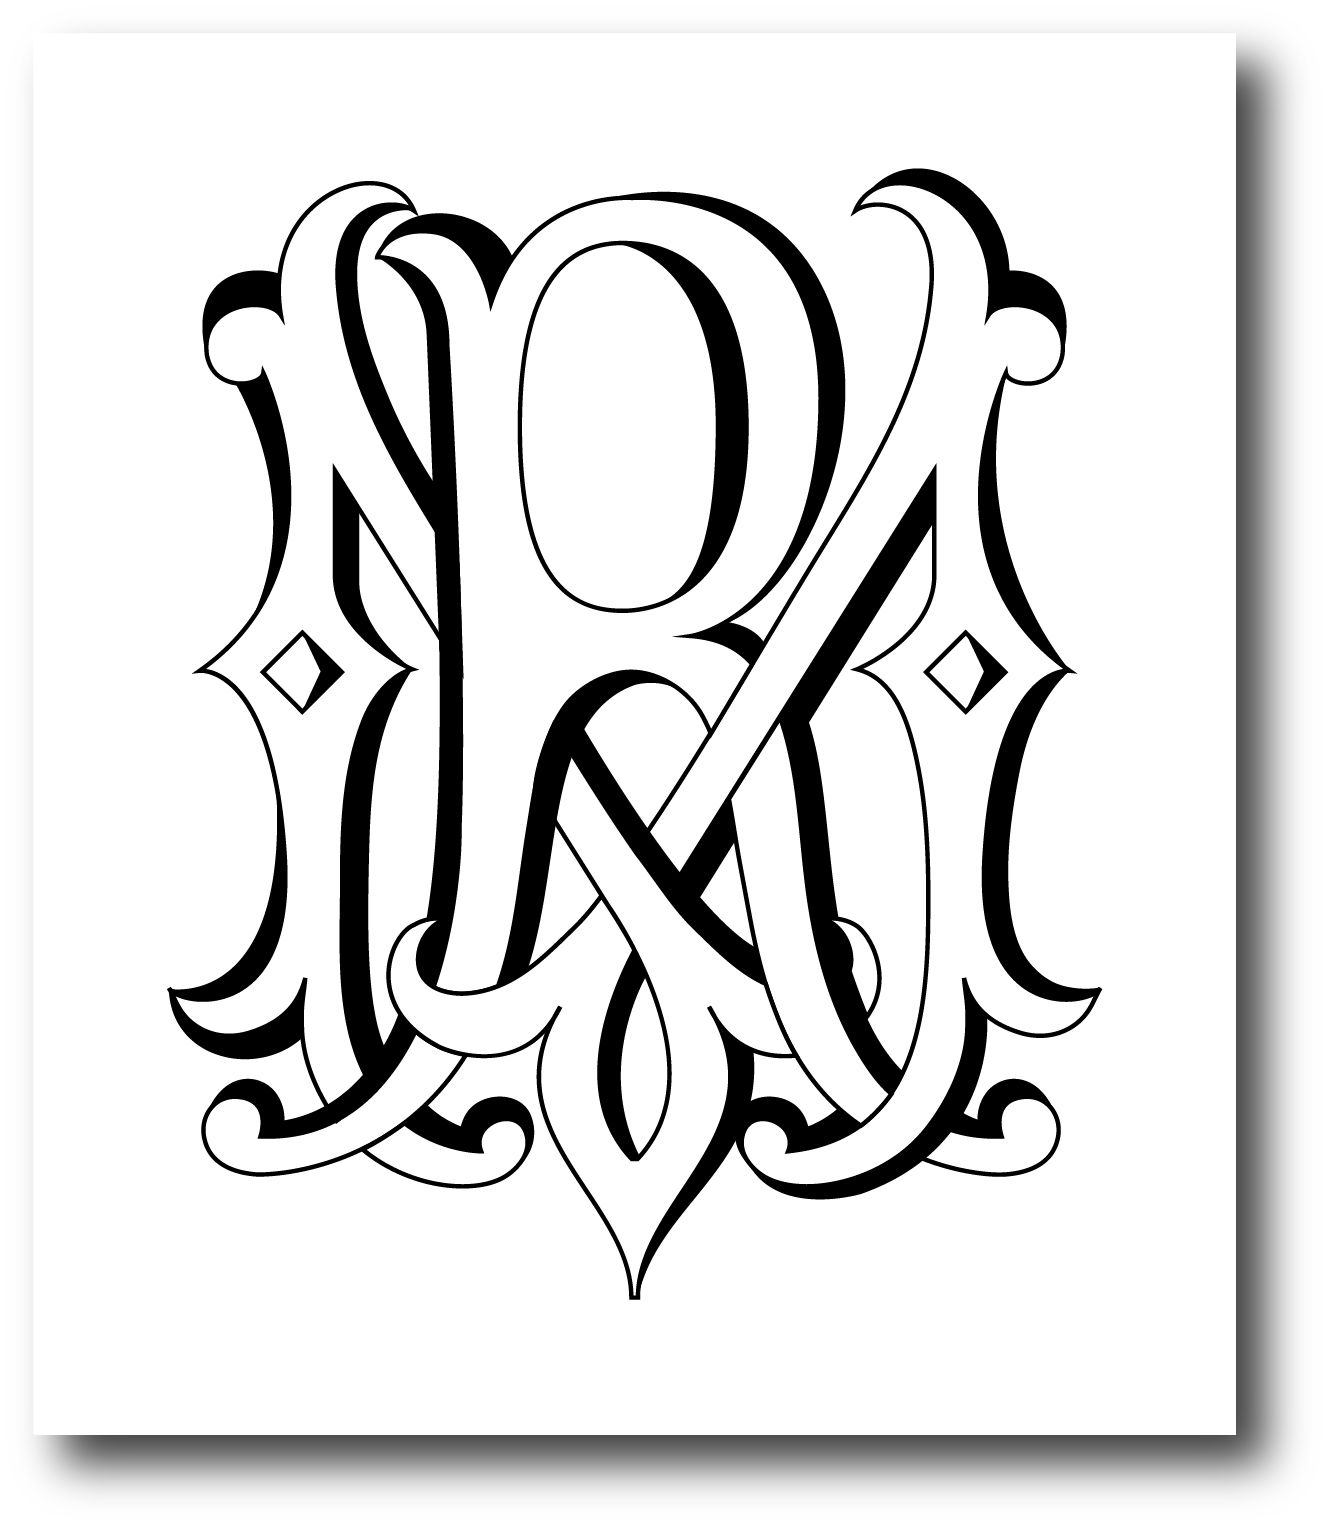 Handcrafted monogram of the Bride (M) & Groom (R) initials